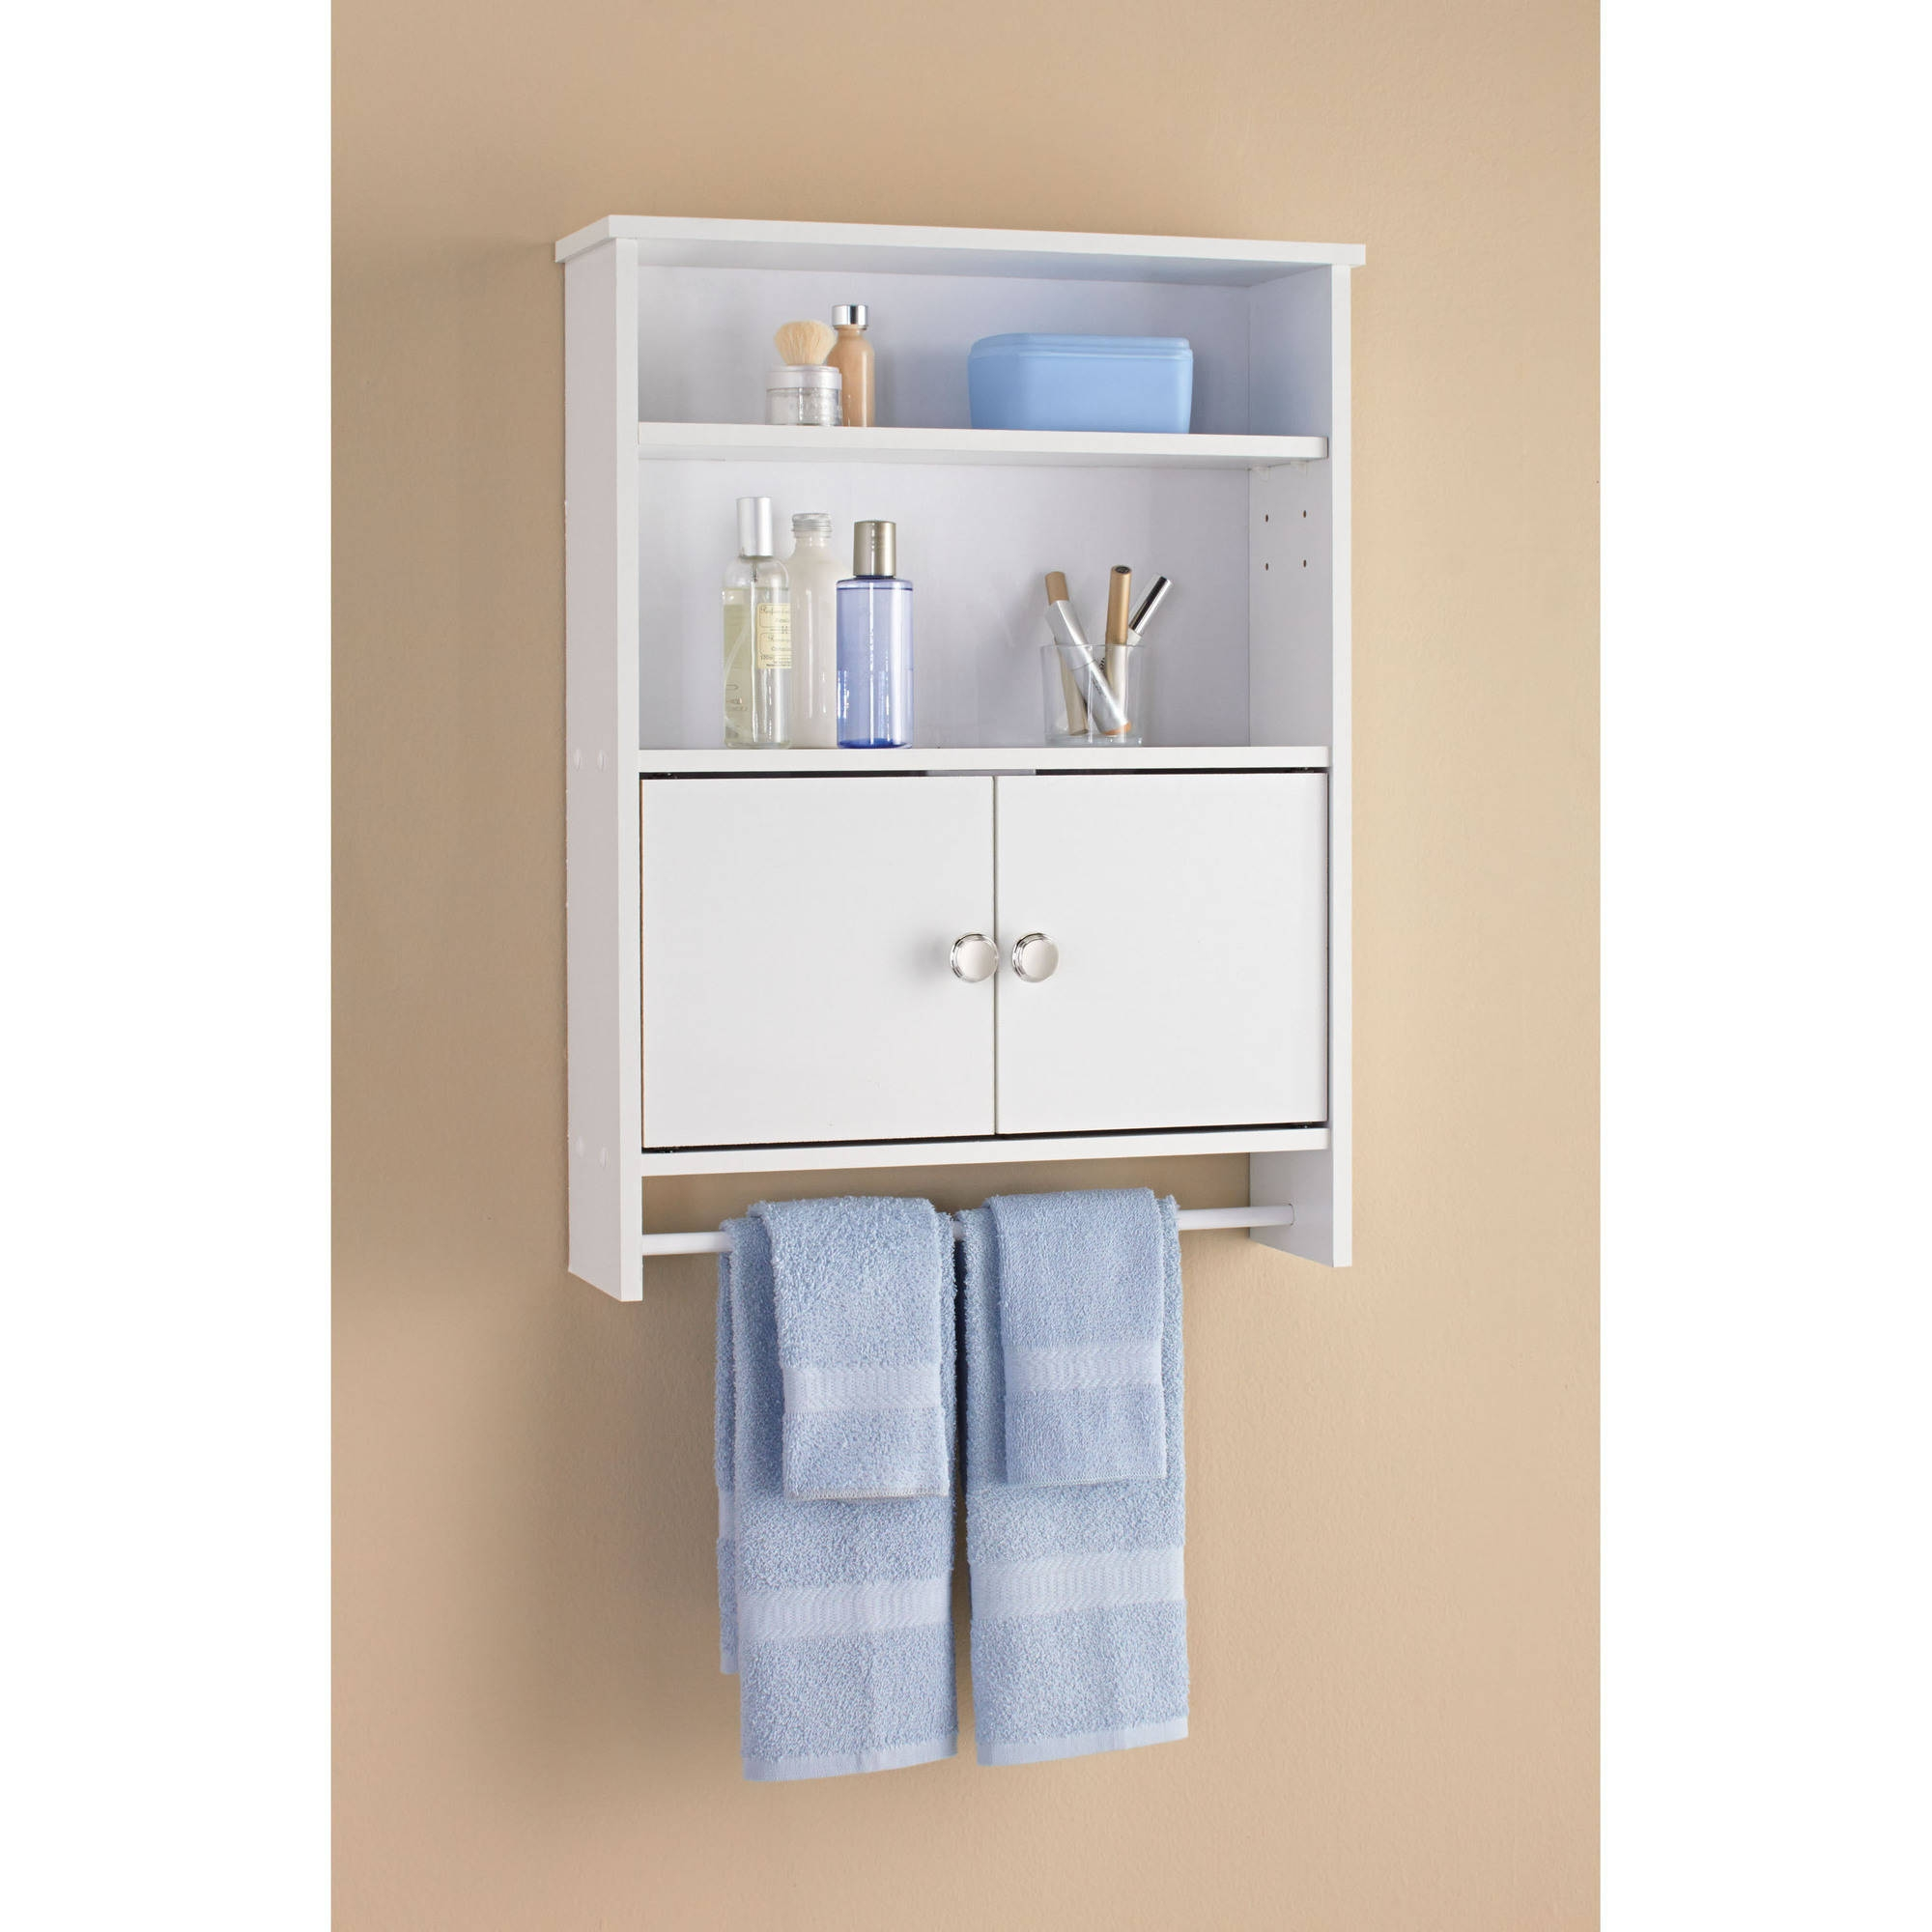 Permalink to Assembled Bathroom Wall Cabinets